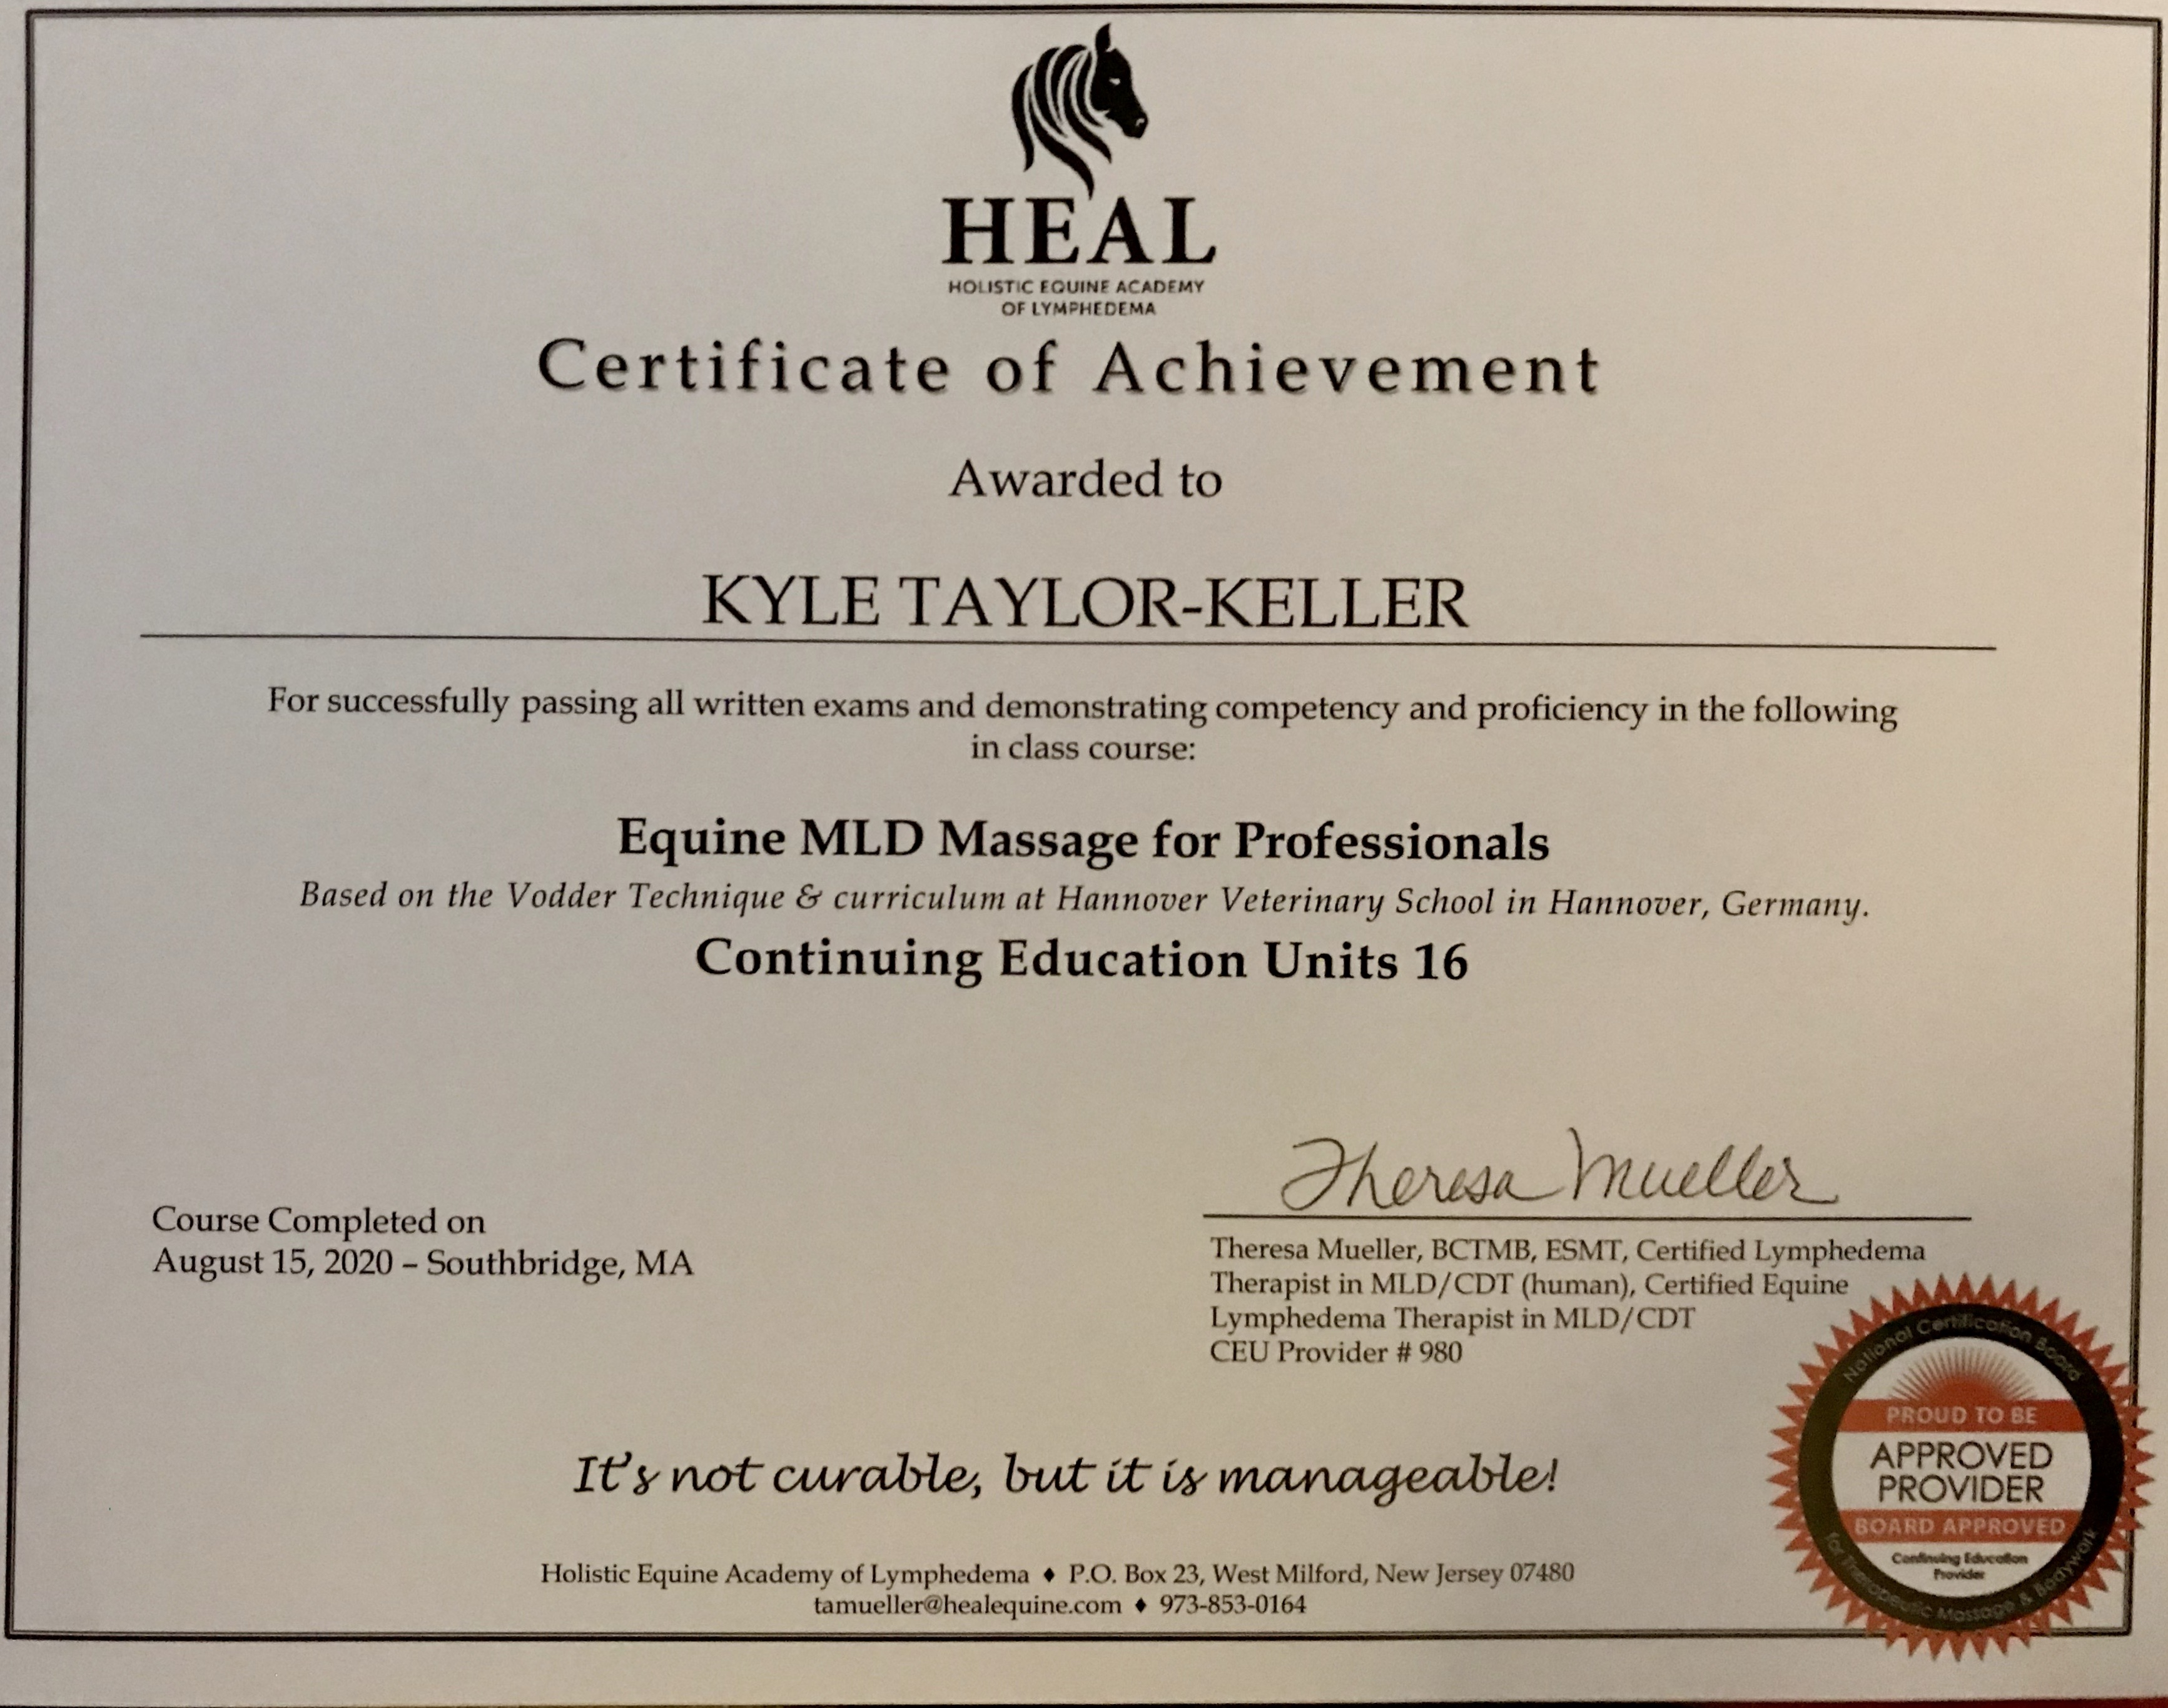 HEAL MLD Therapist